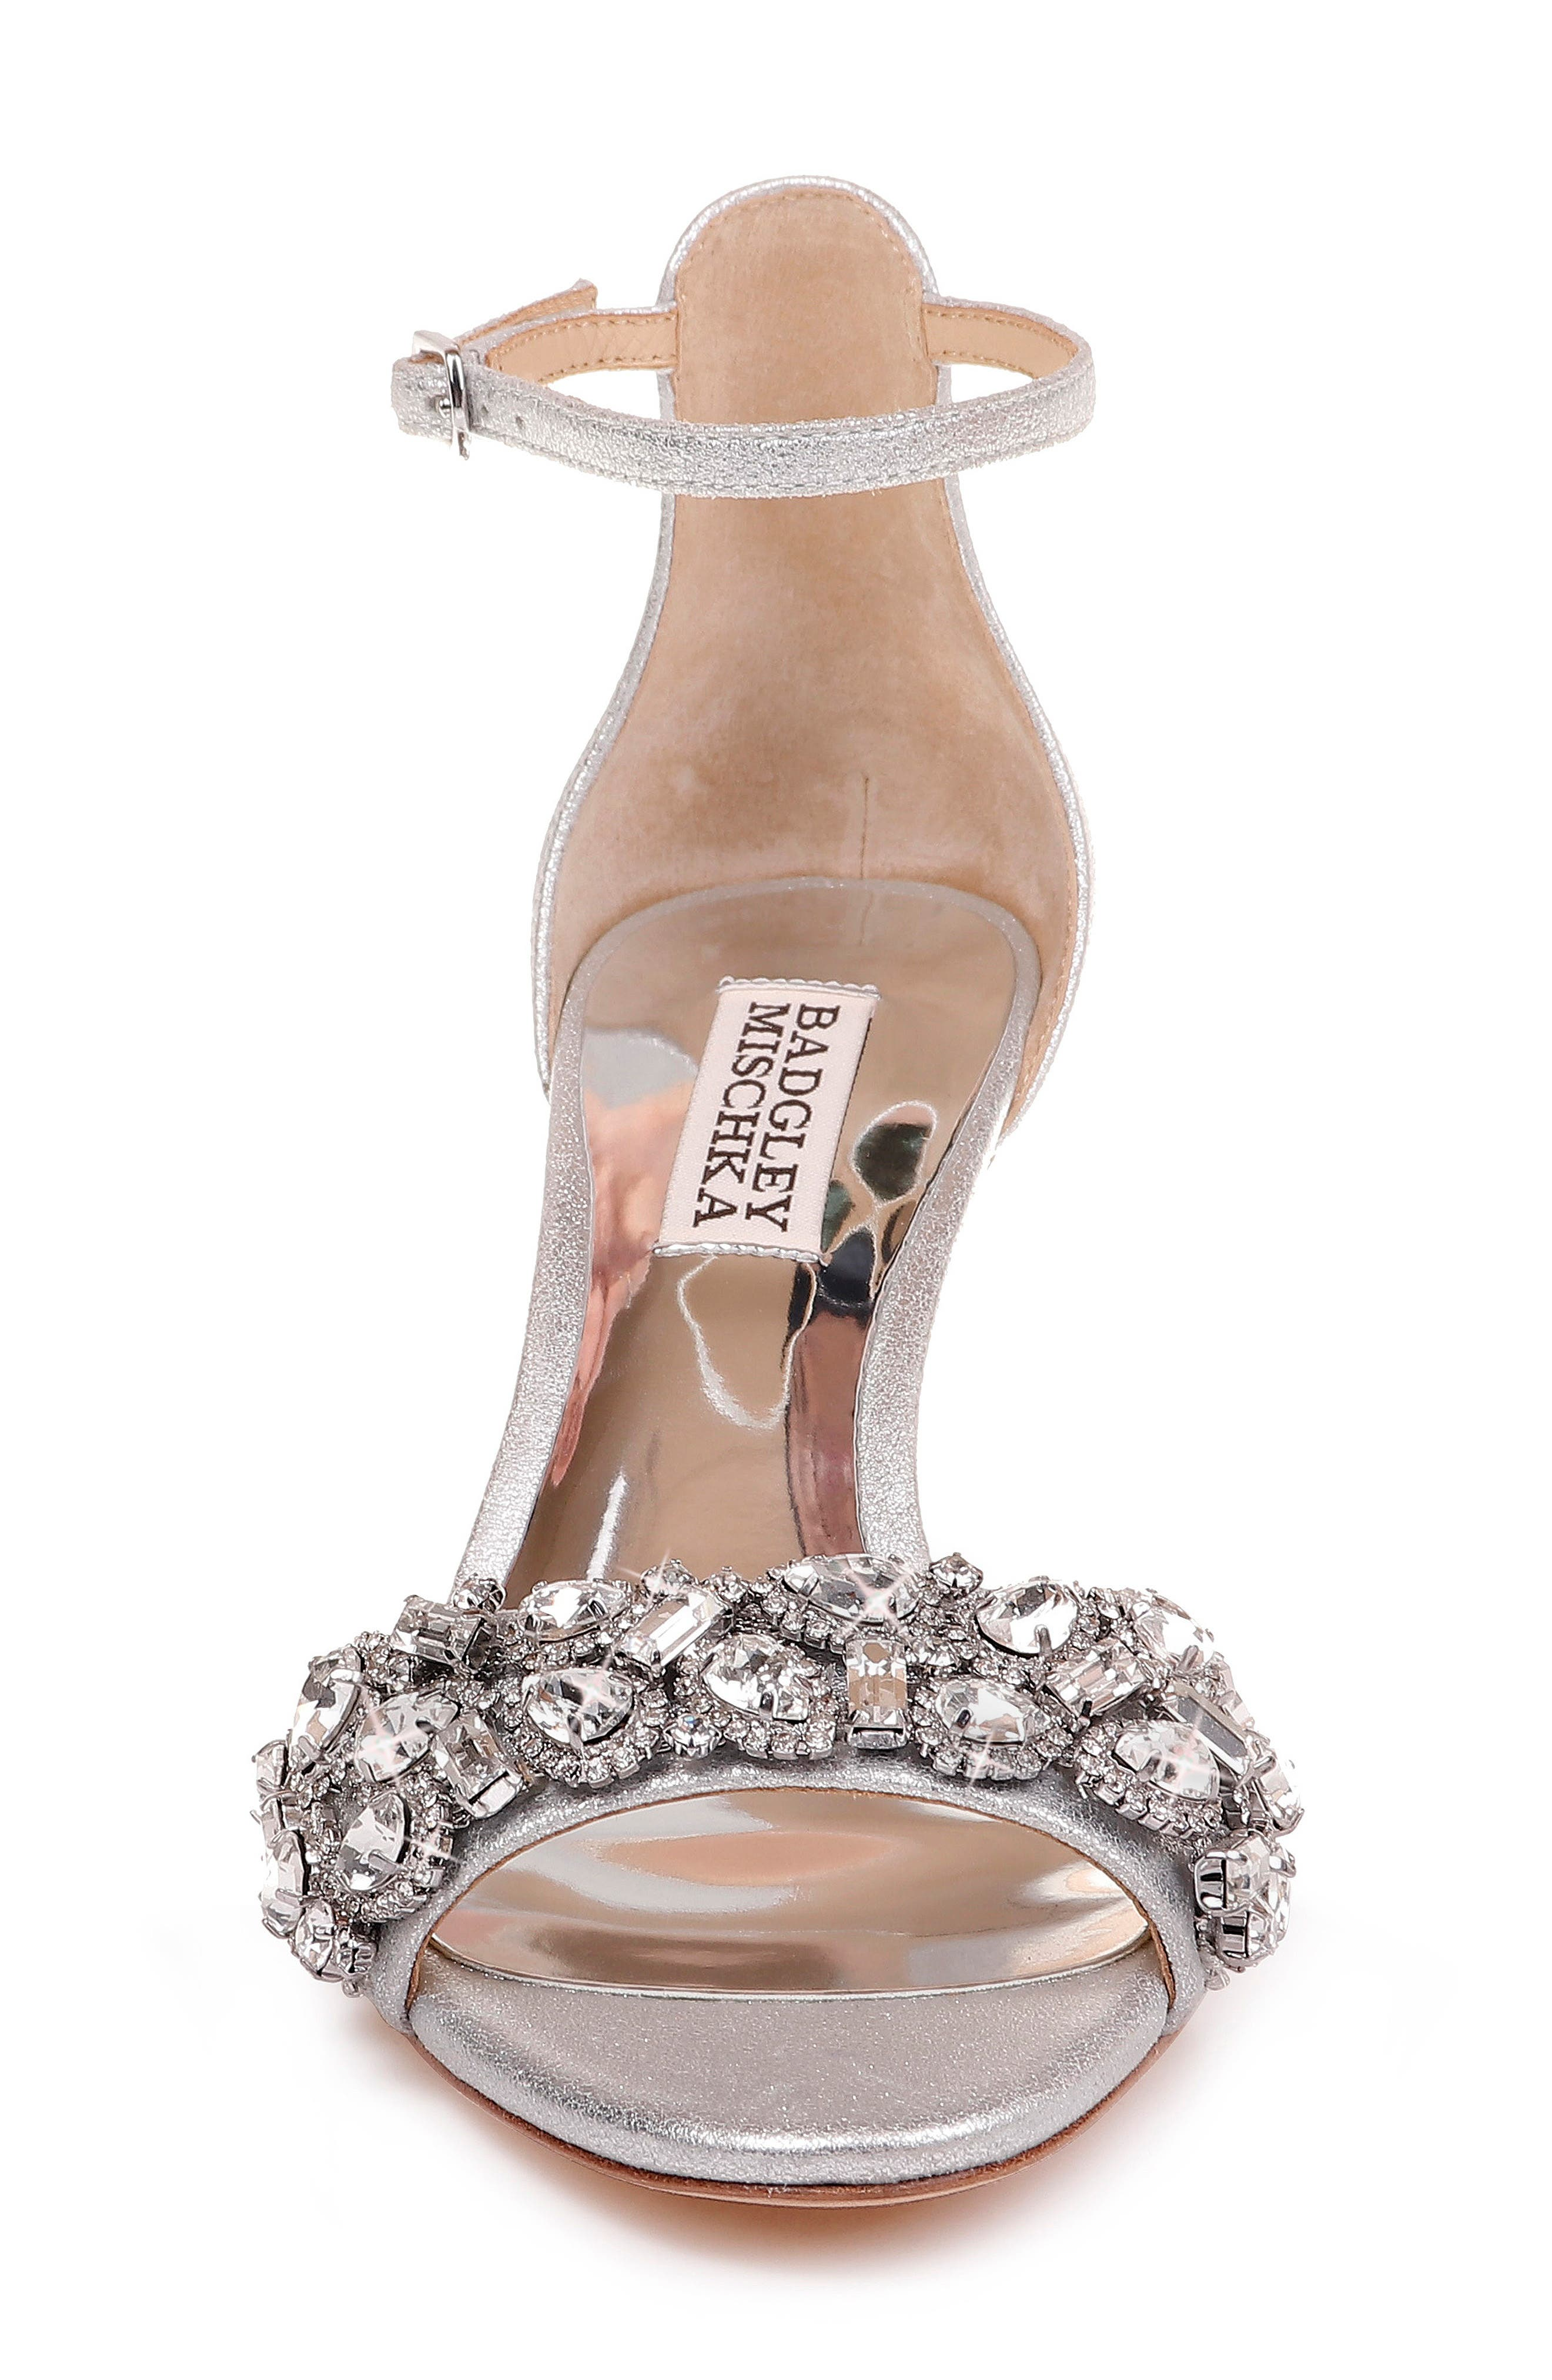 BADGLEY MISCHKA COLLECTION, Badgley Mischka Lara Crystal Embellished Sandal, Alternate thumbnail 5, color, SILVER METALLIC SUEDE